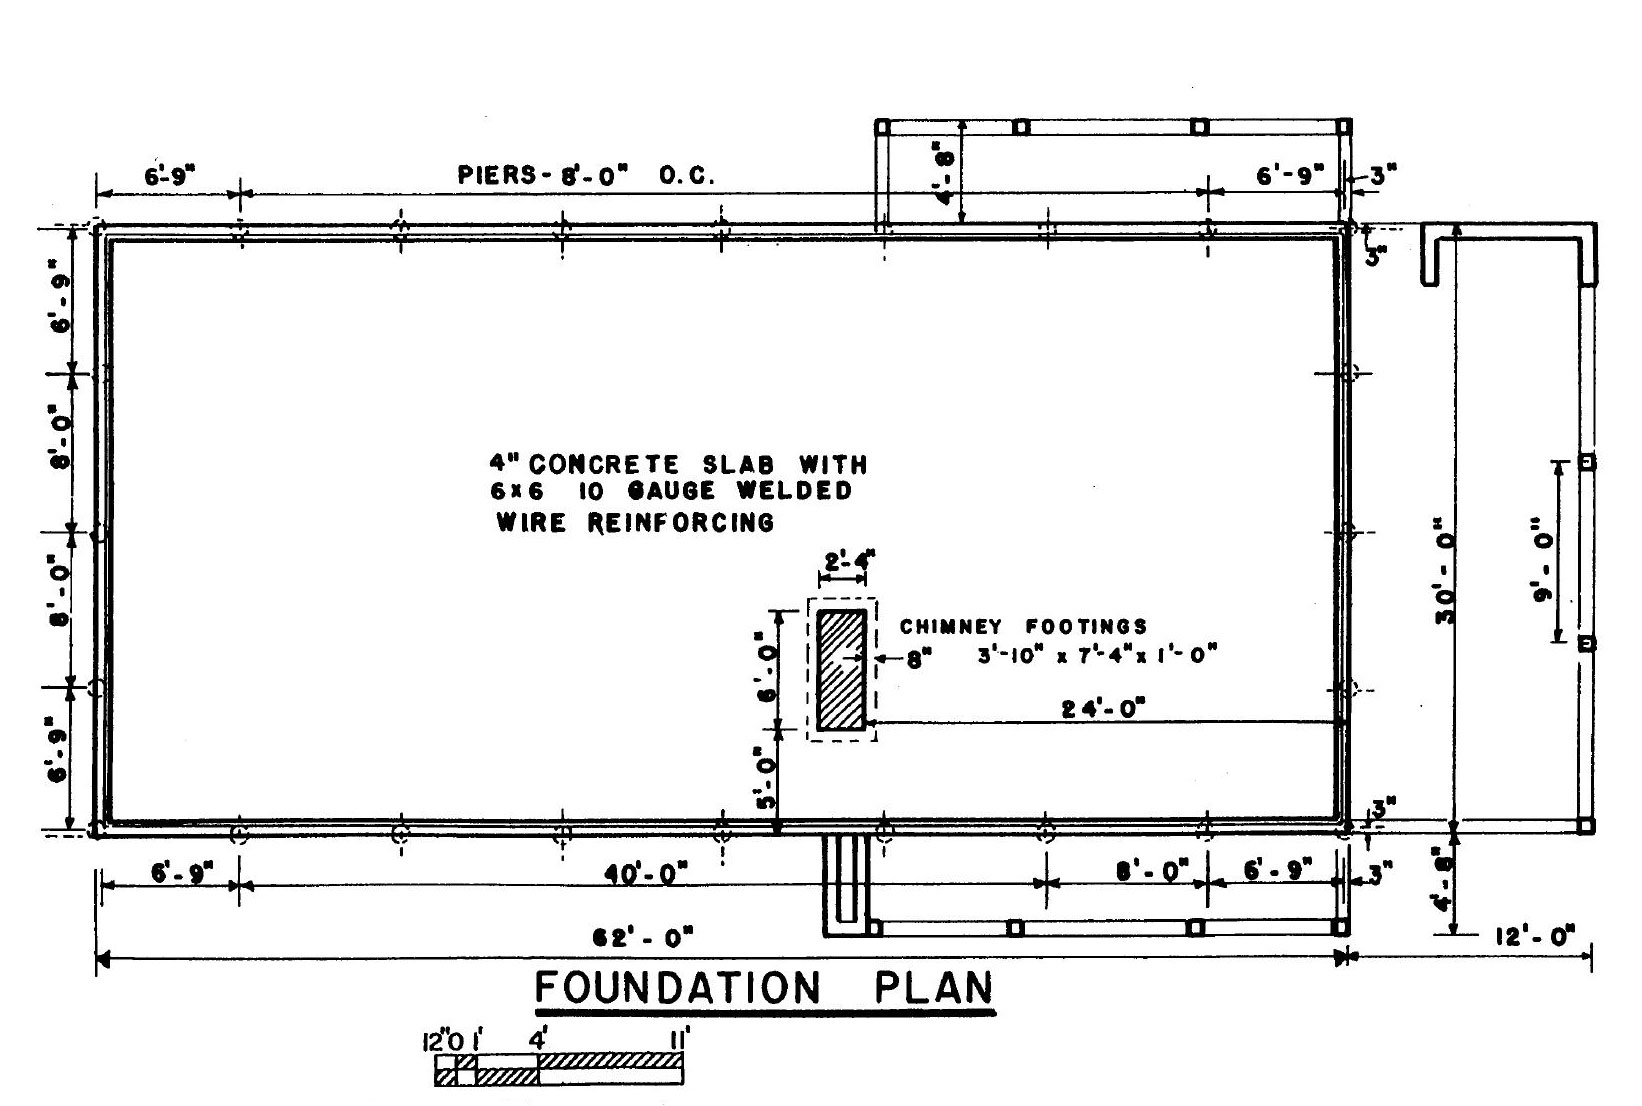 House foundation plans ideas home building plans 1525 for Building foundation plans